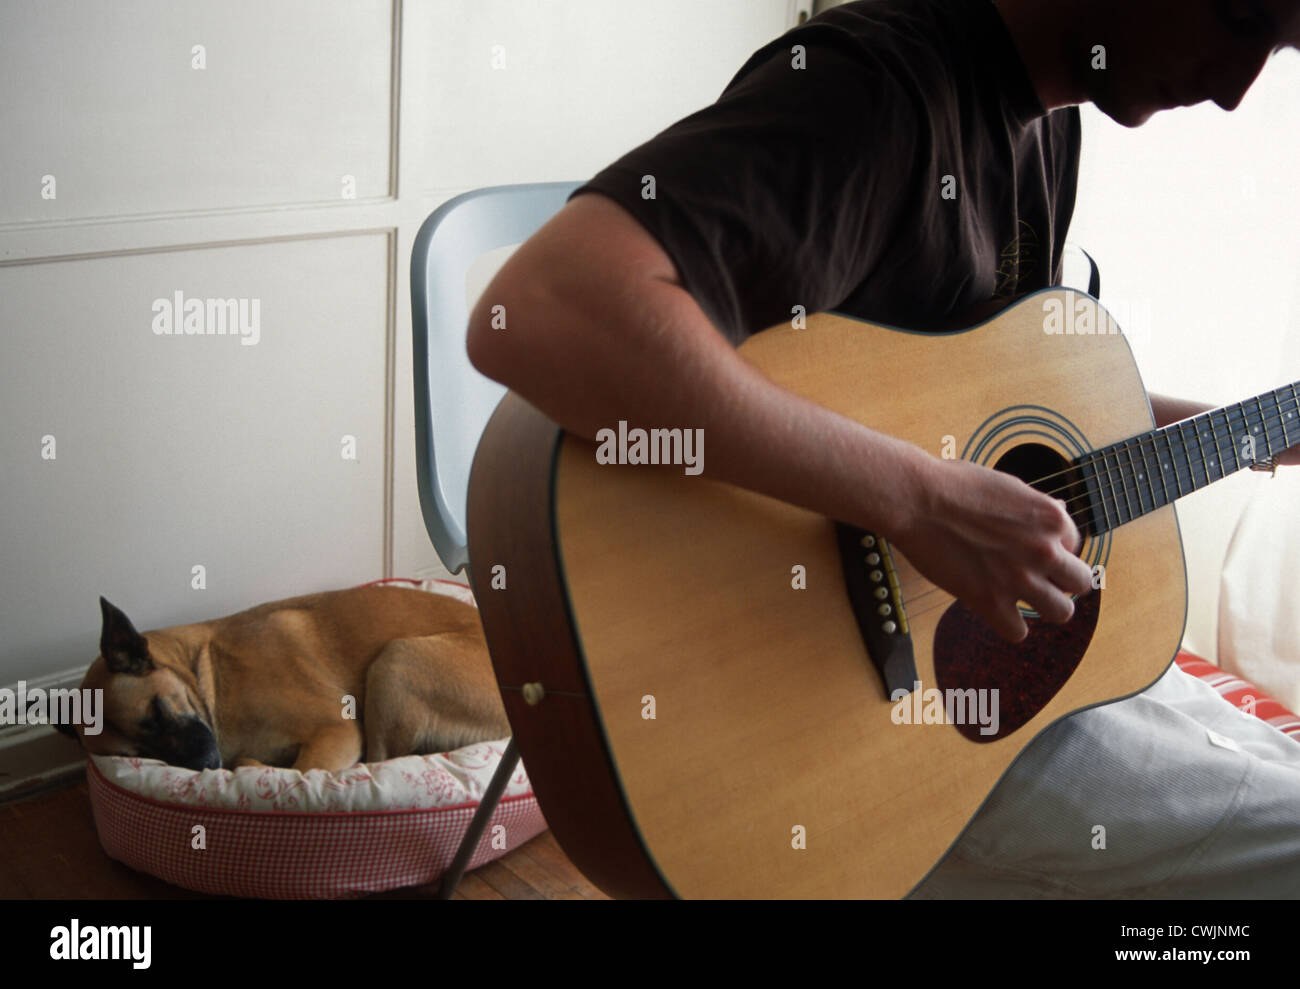 Teenager Playing GuitarStock Photo